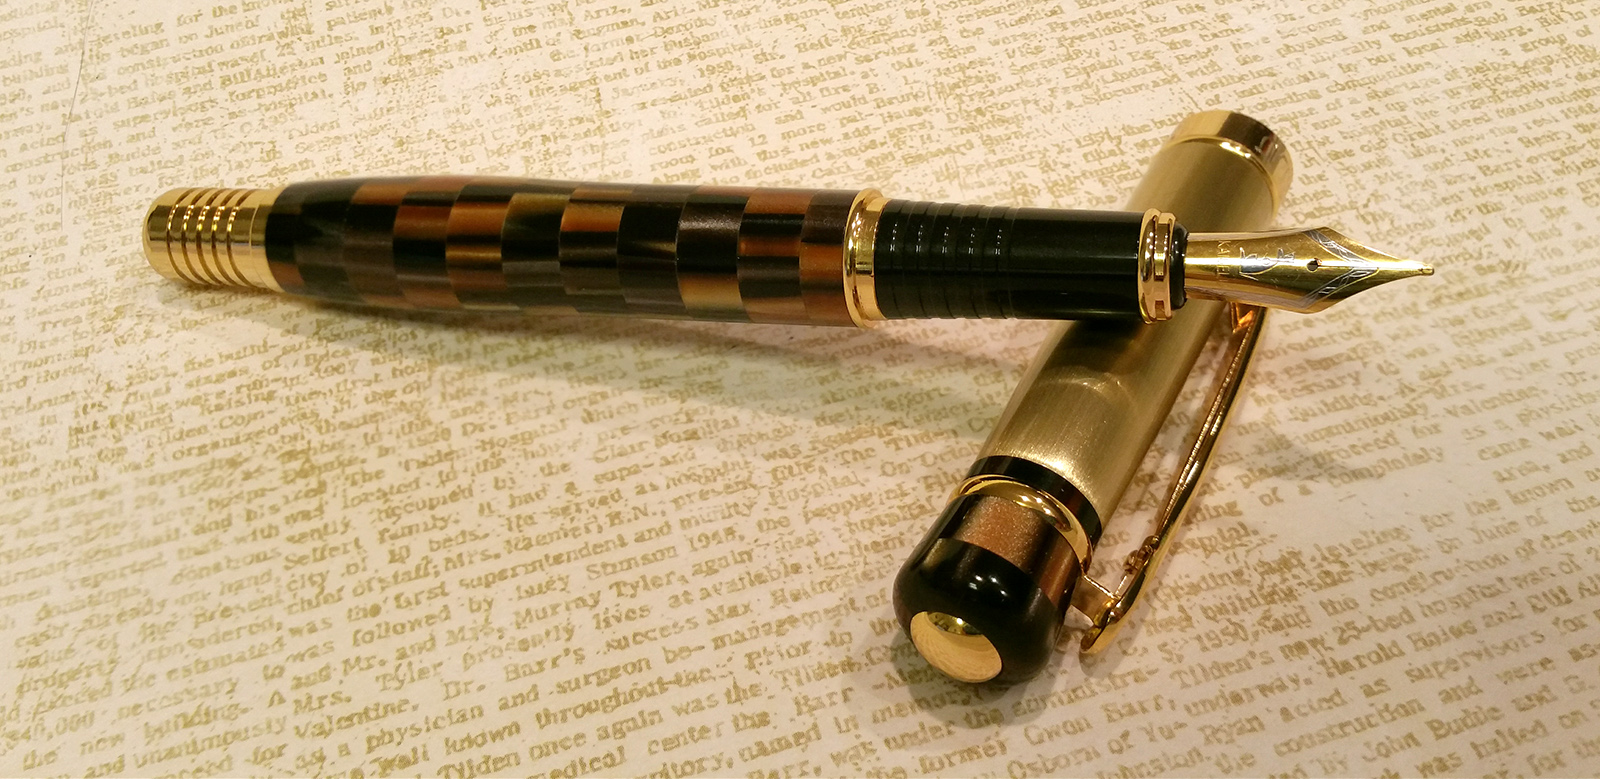 Kaigelu 336 Fountain Pen with the cap removed